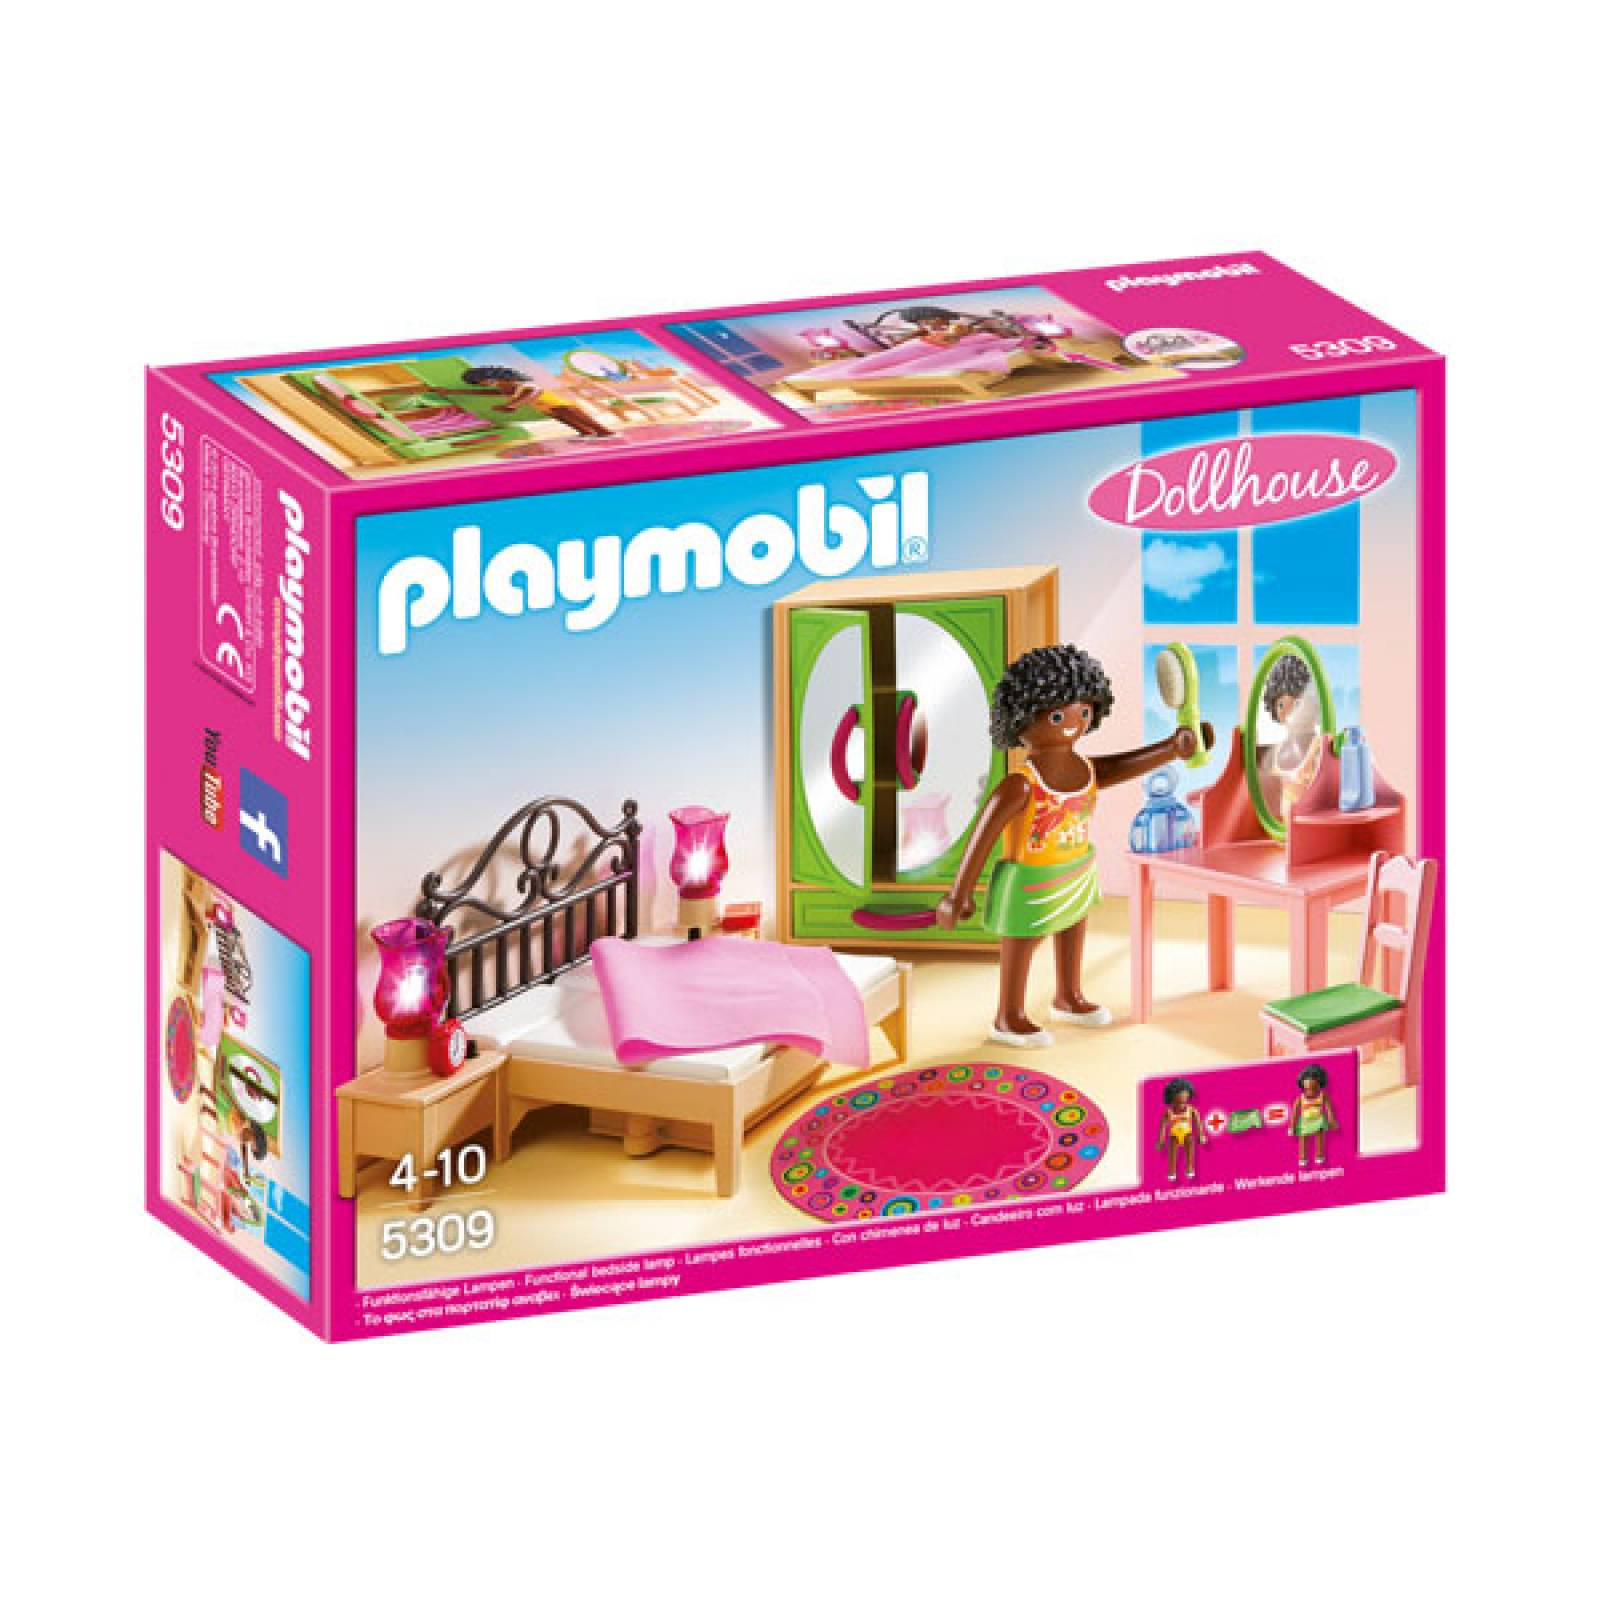 Master Bedroom Playmobil 5309 thumbnails